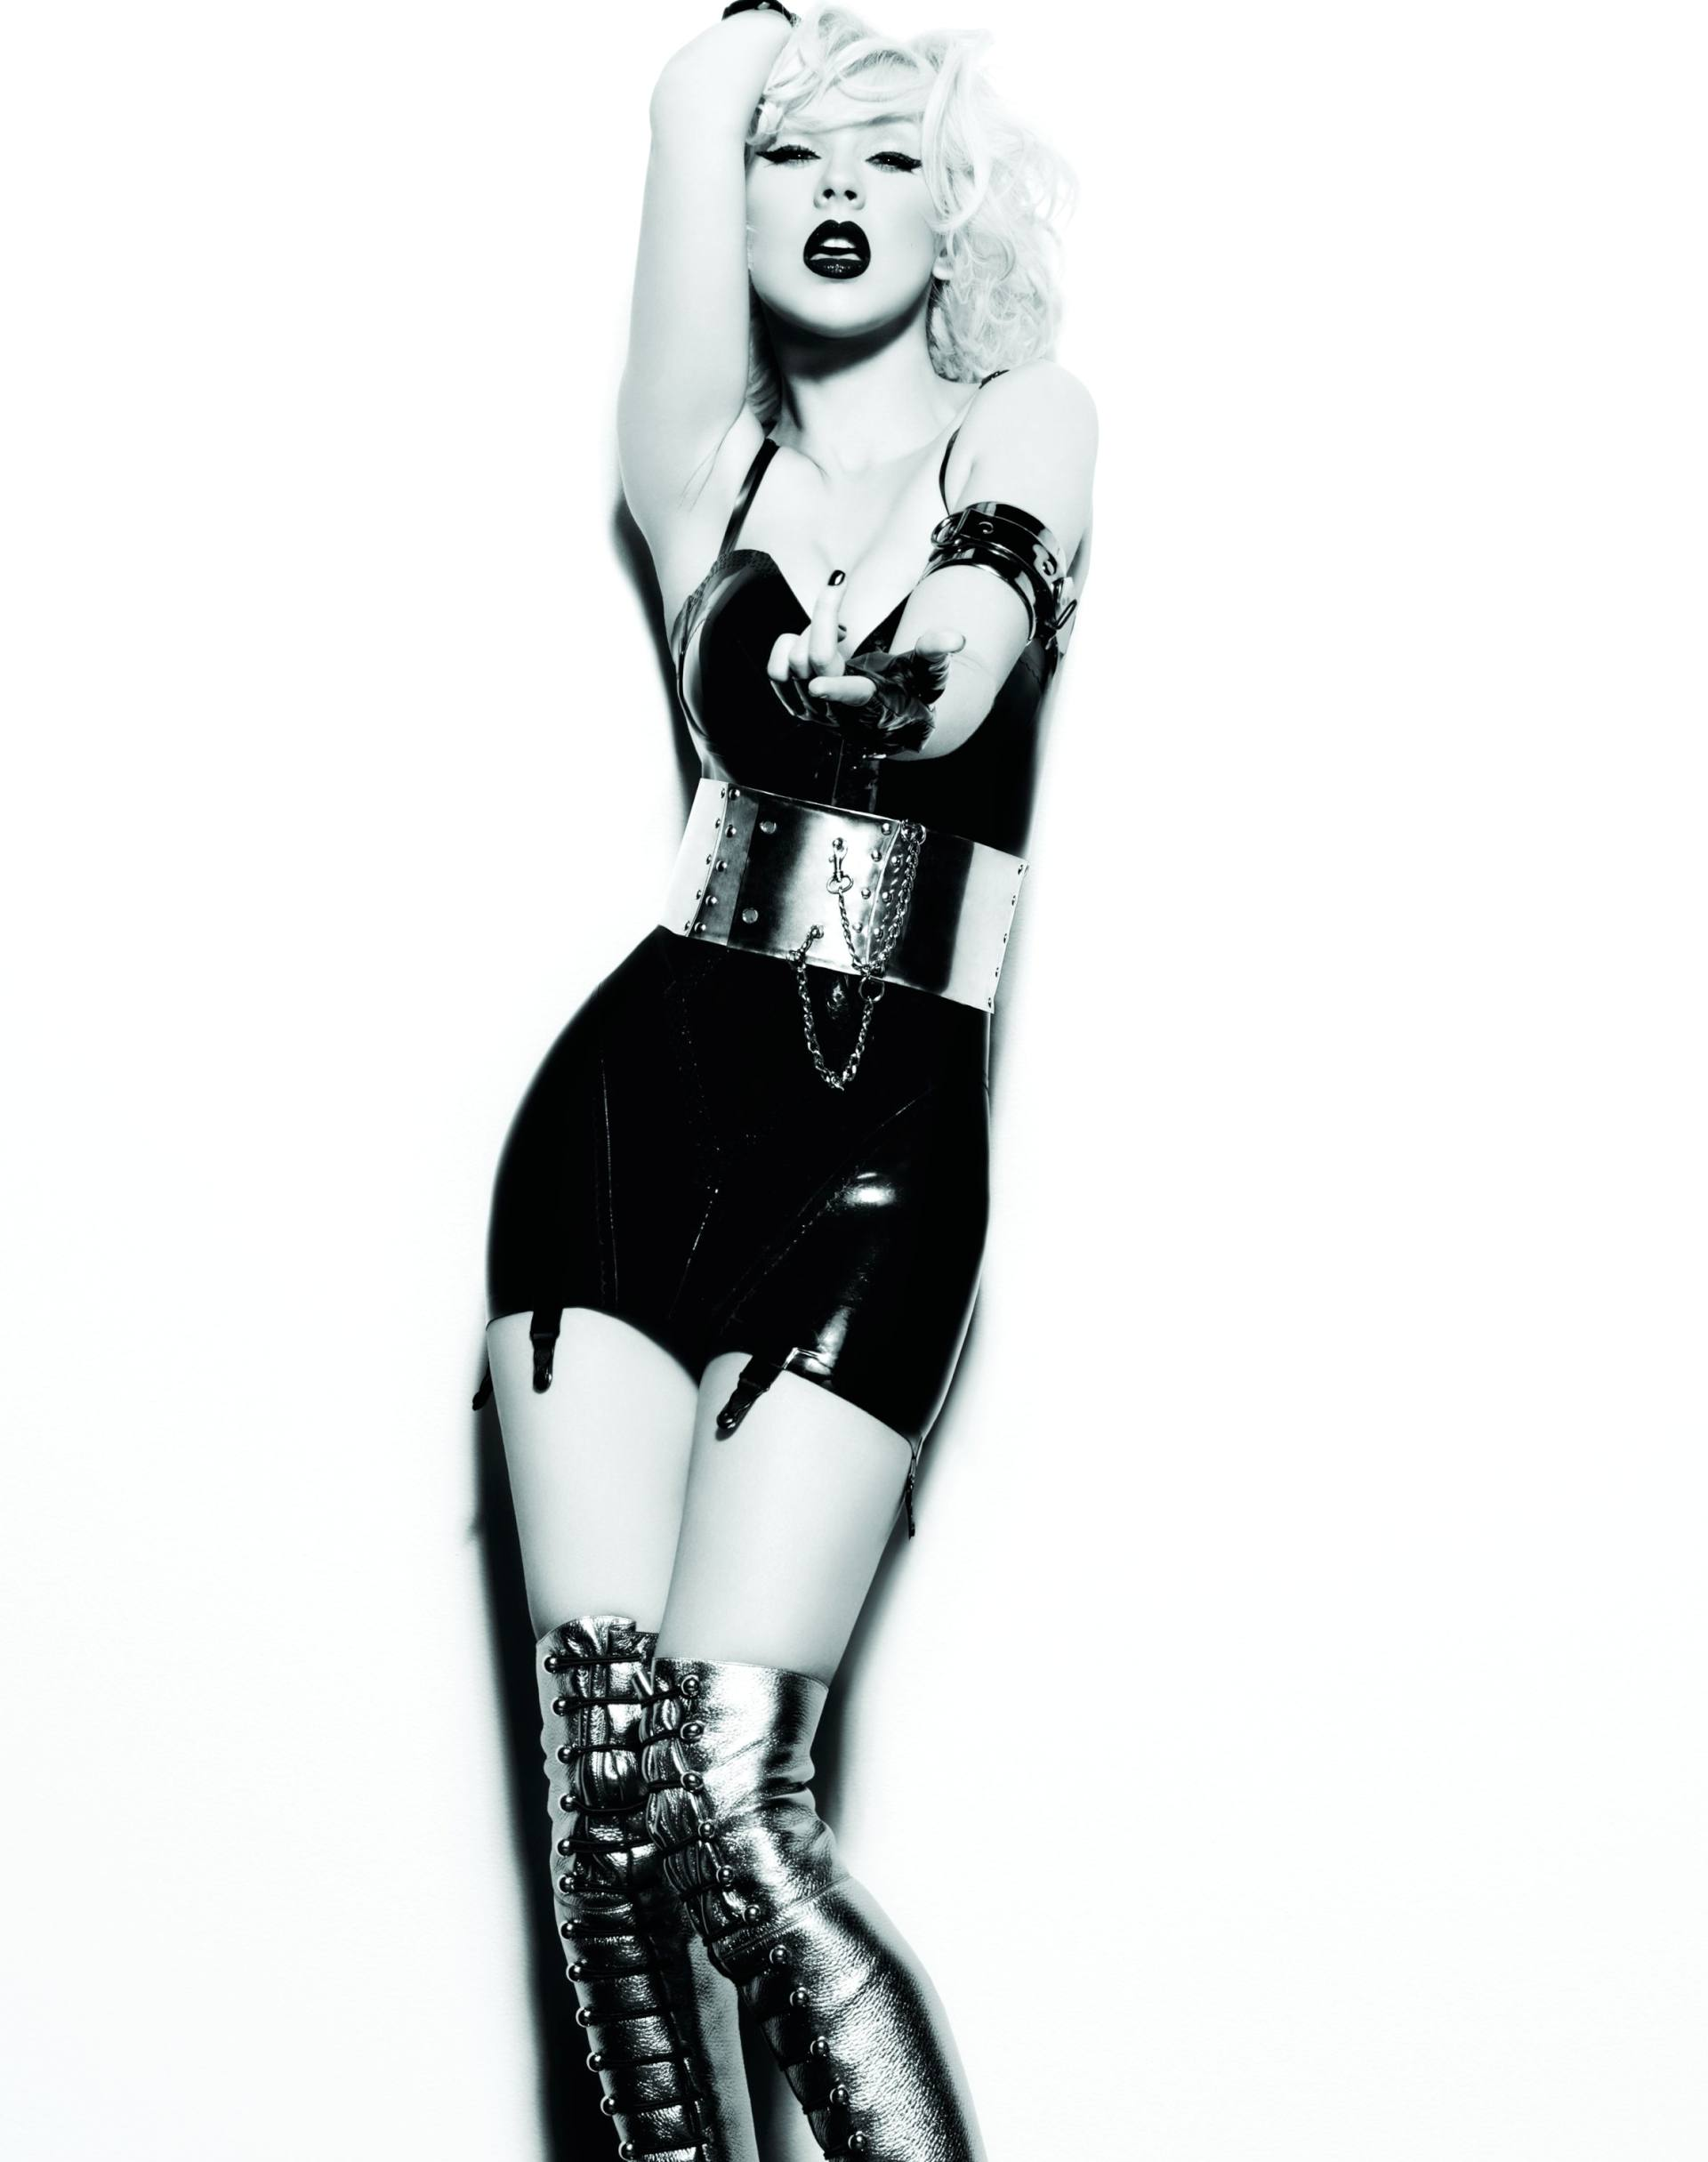 Christina Aguilera – Sexy Boobs In Naked Photoshoot Outtakes From Bionic Album Photoshoot 0021